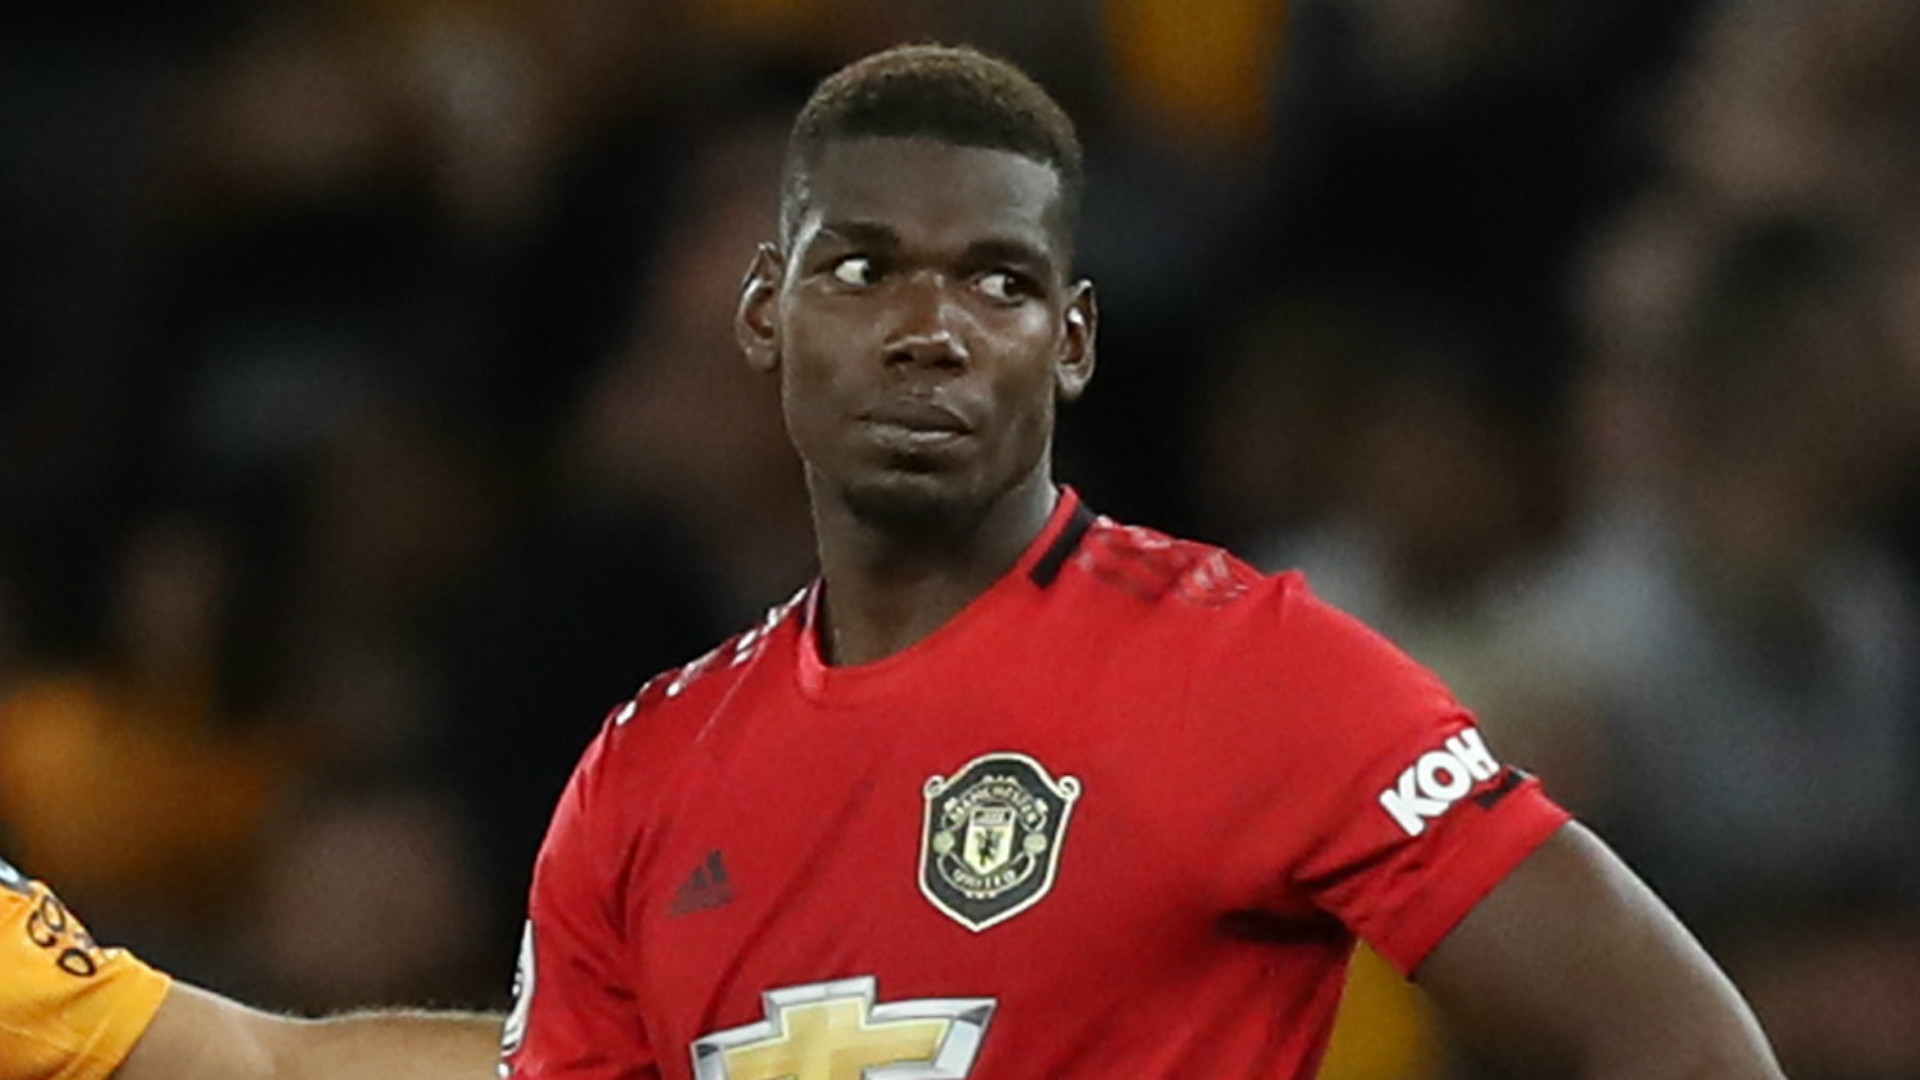 'Pogba damned if he does and damned if he doesn't' – Rashford showed respect in Man Utd penalty row, says Parker